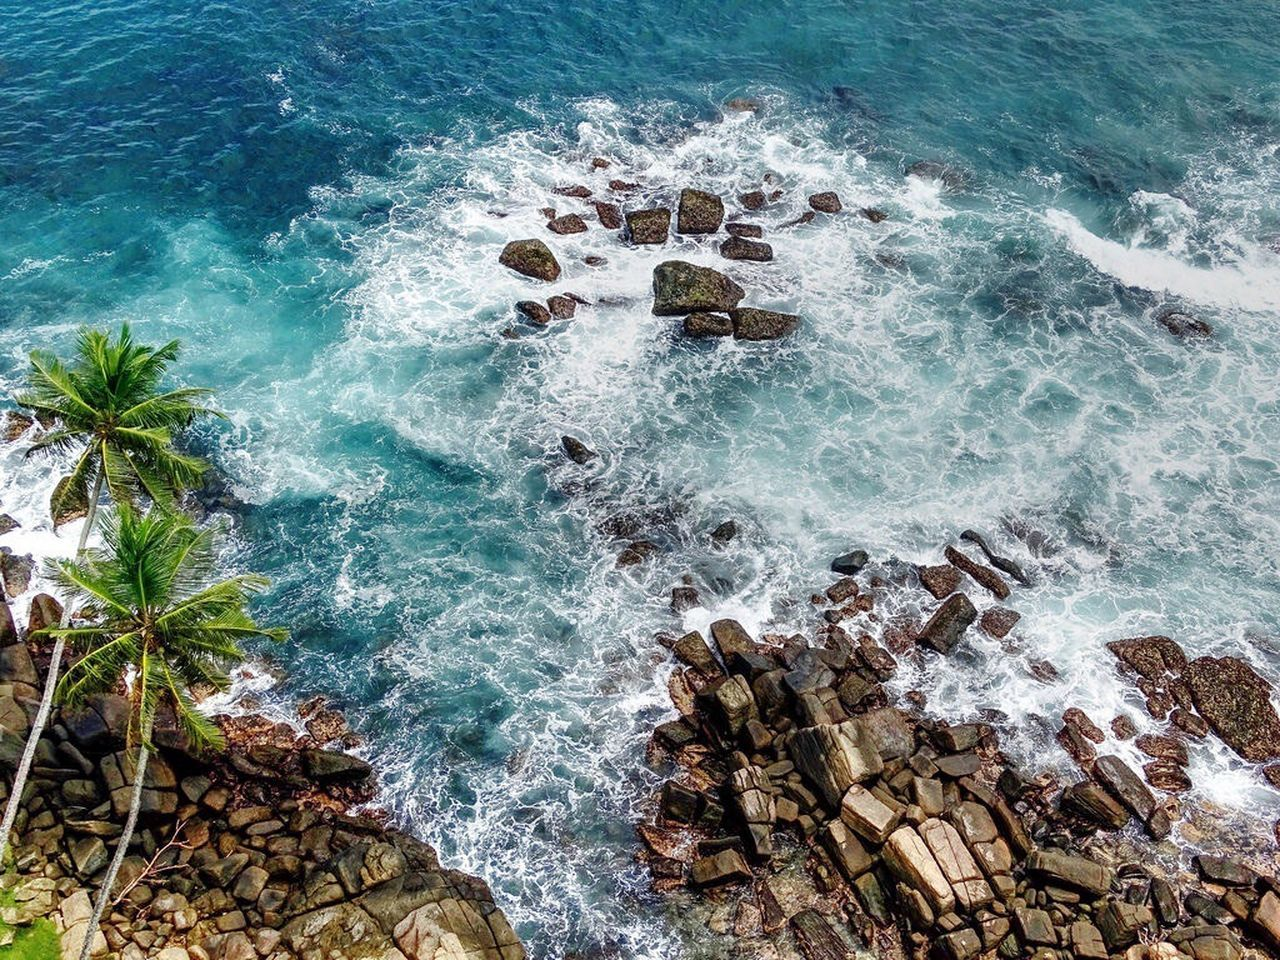 sea, rock - object, water, wave, nature, motion, beauty in nature, no people, high angle view, day, outdoors, breaking, beach, crash